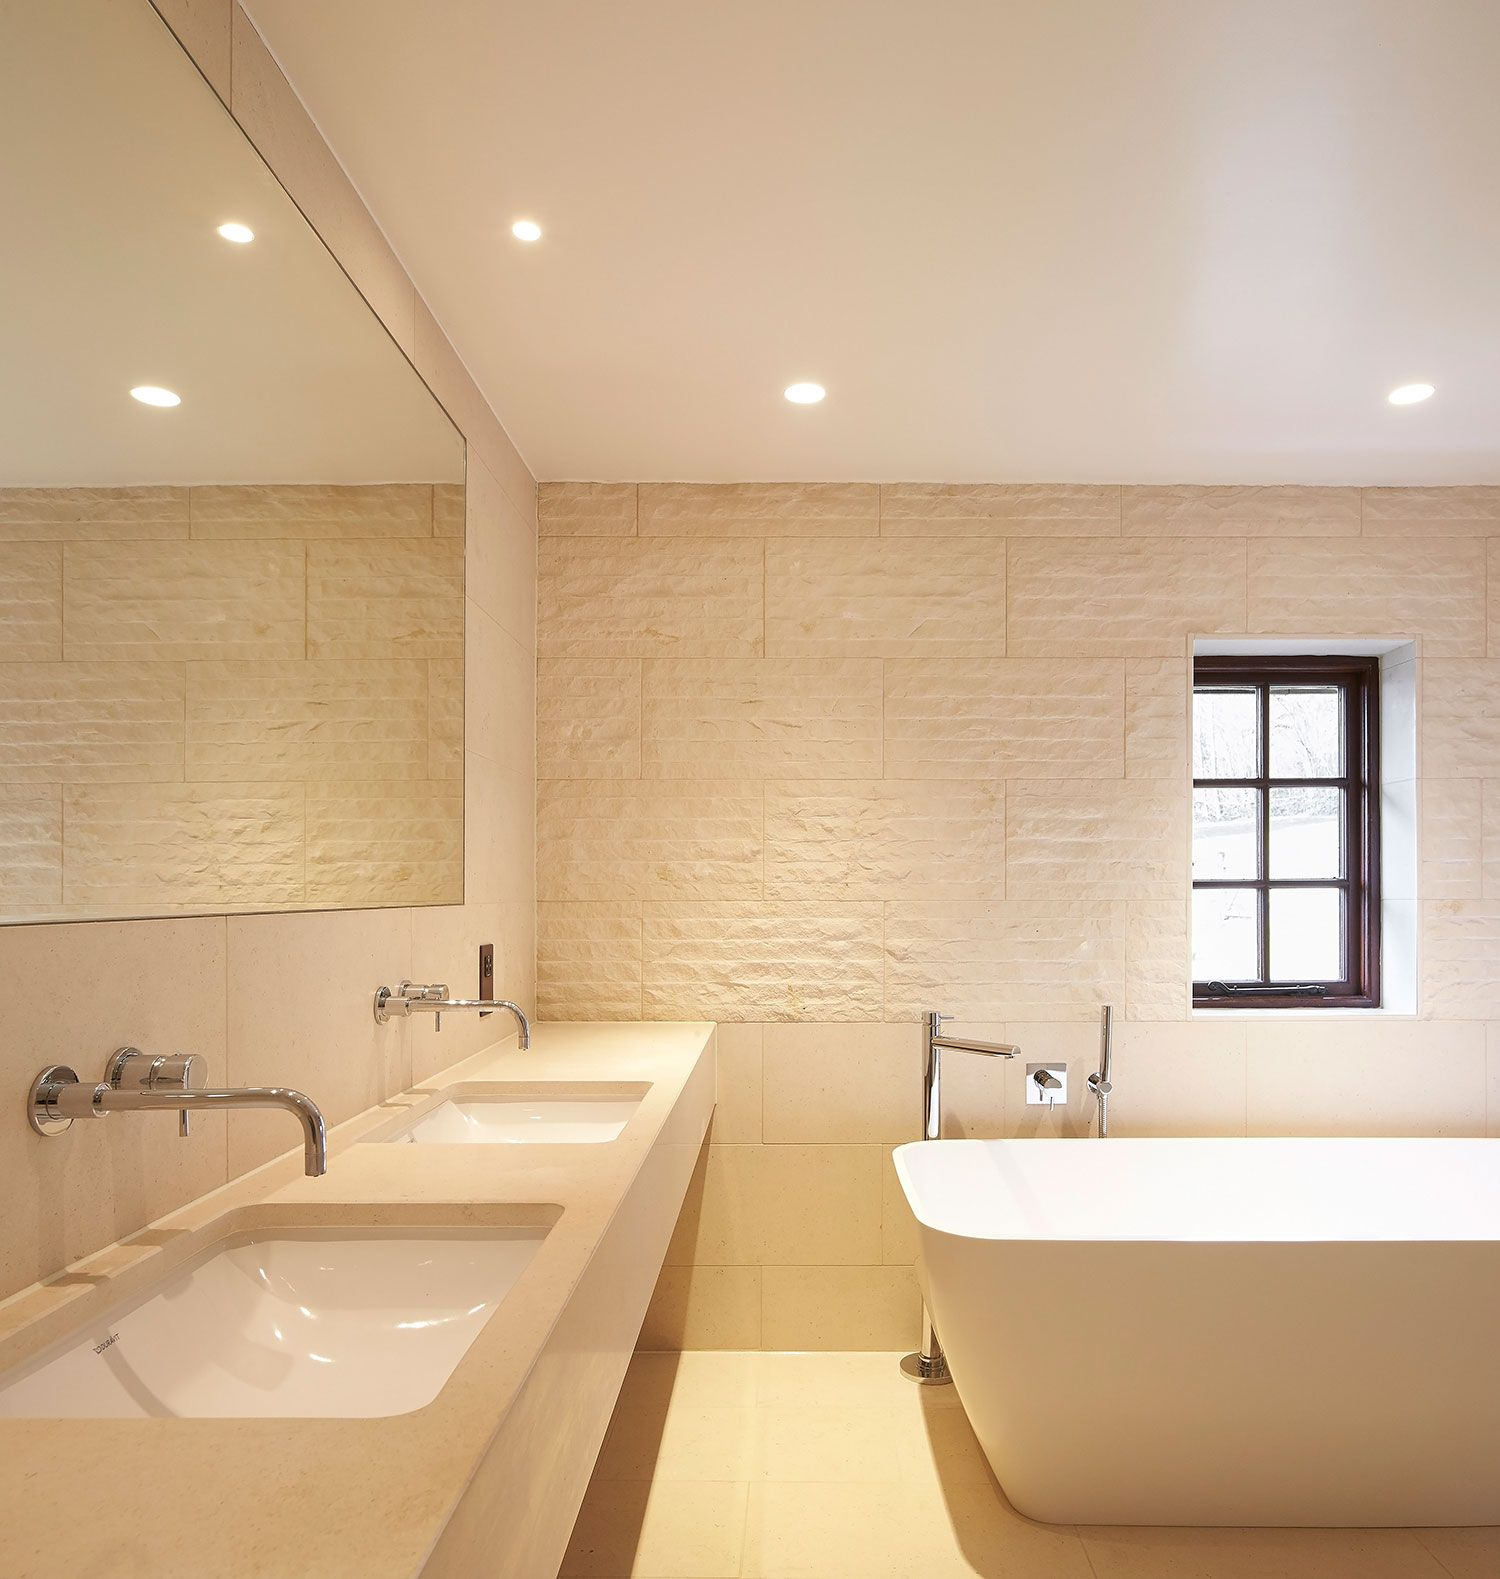 A Betiful Home Bathroom Featuring Natural Stone Floor and Wall